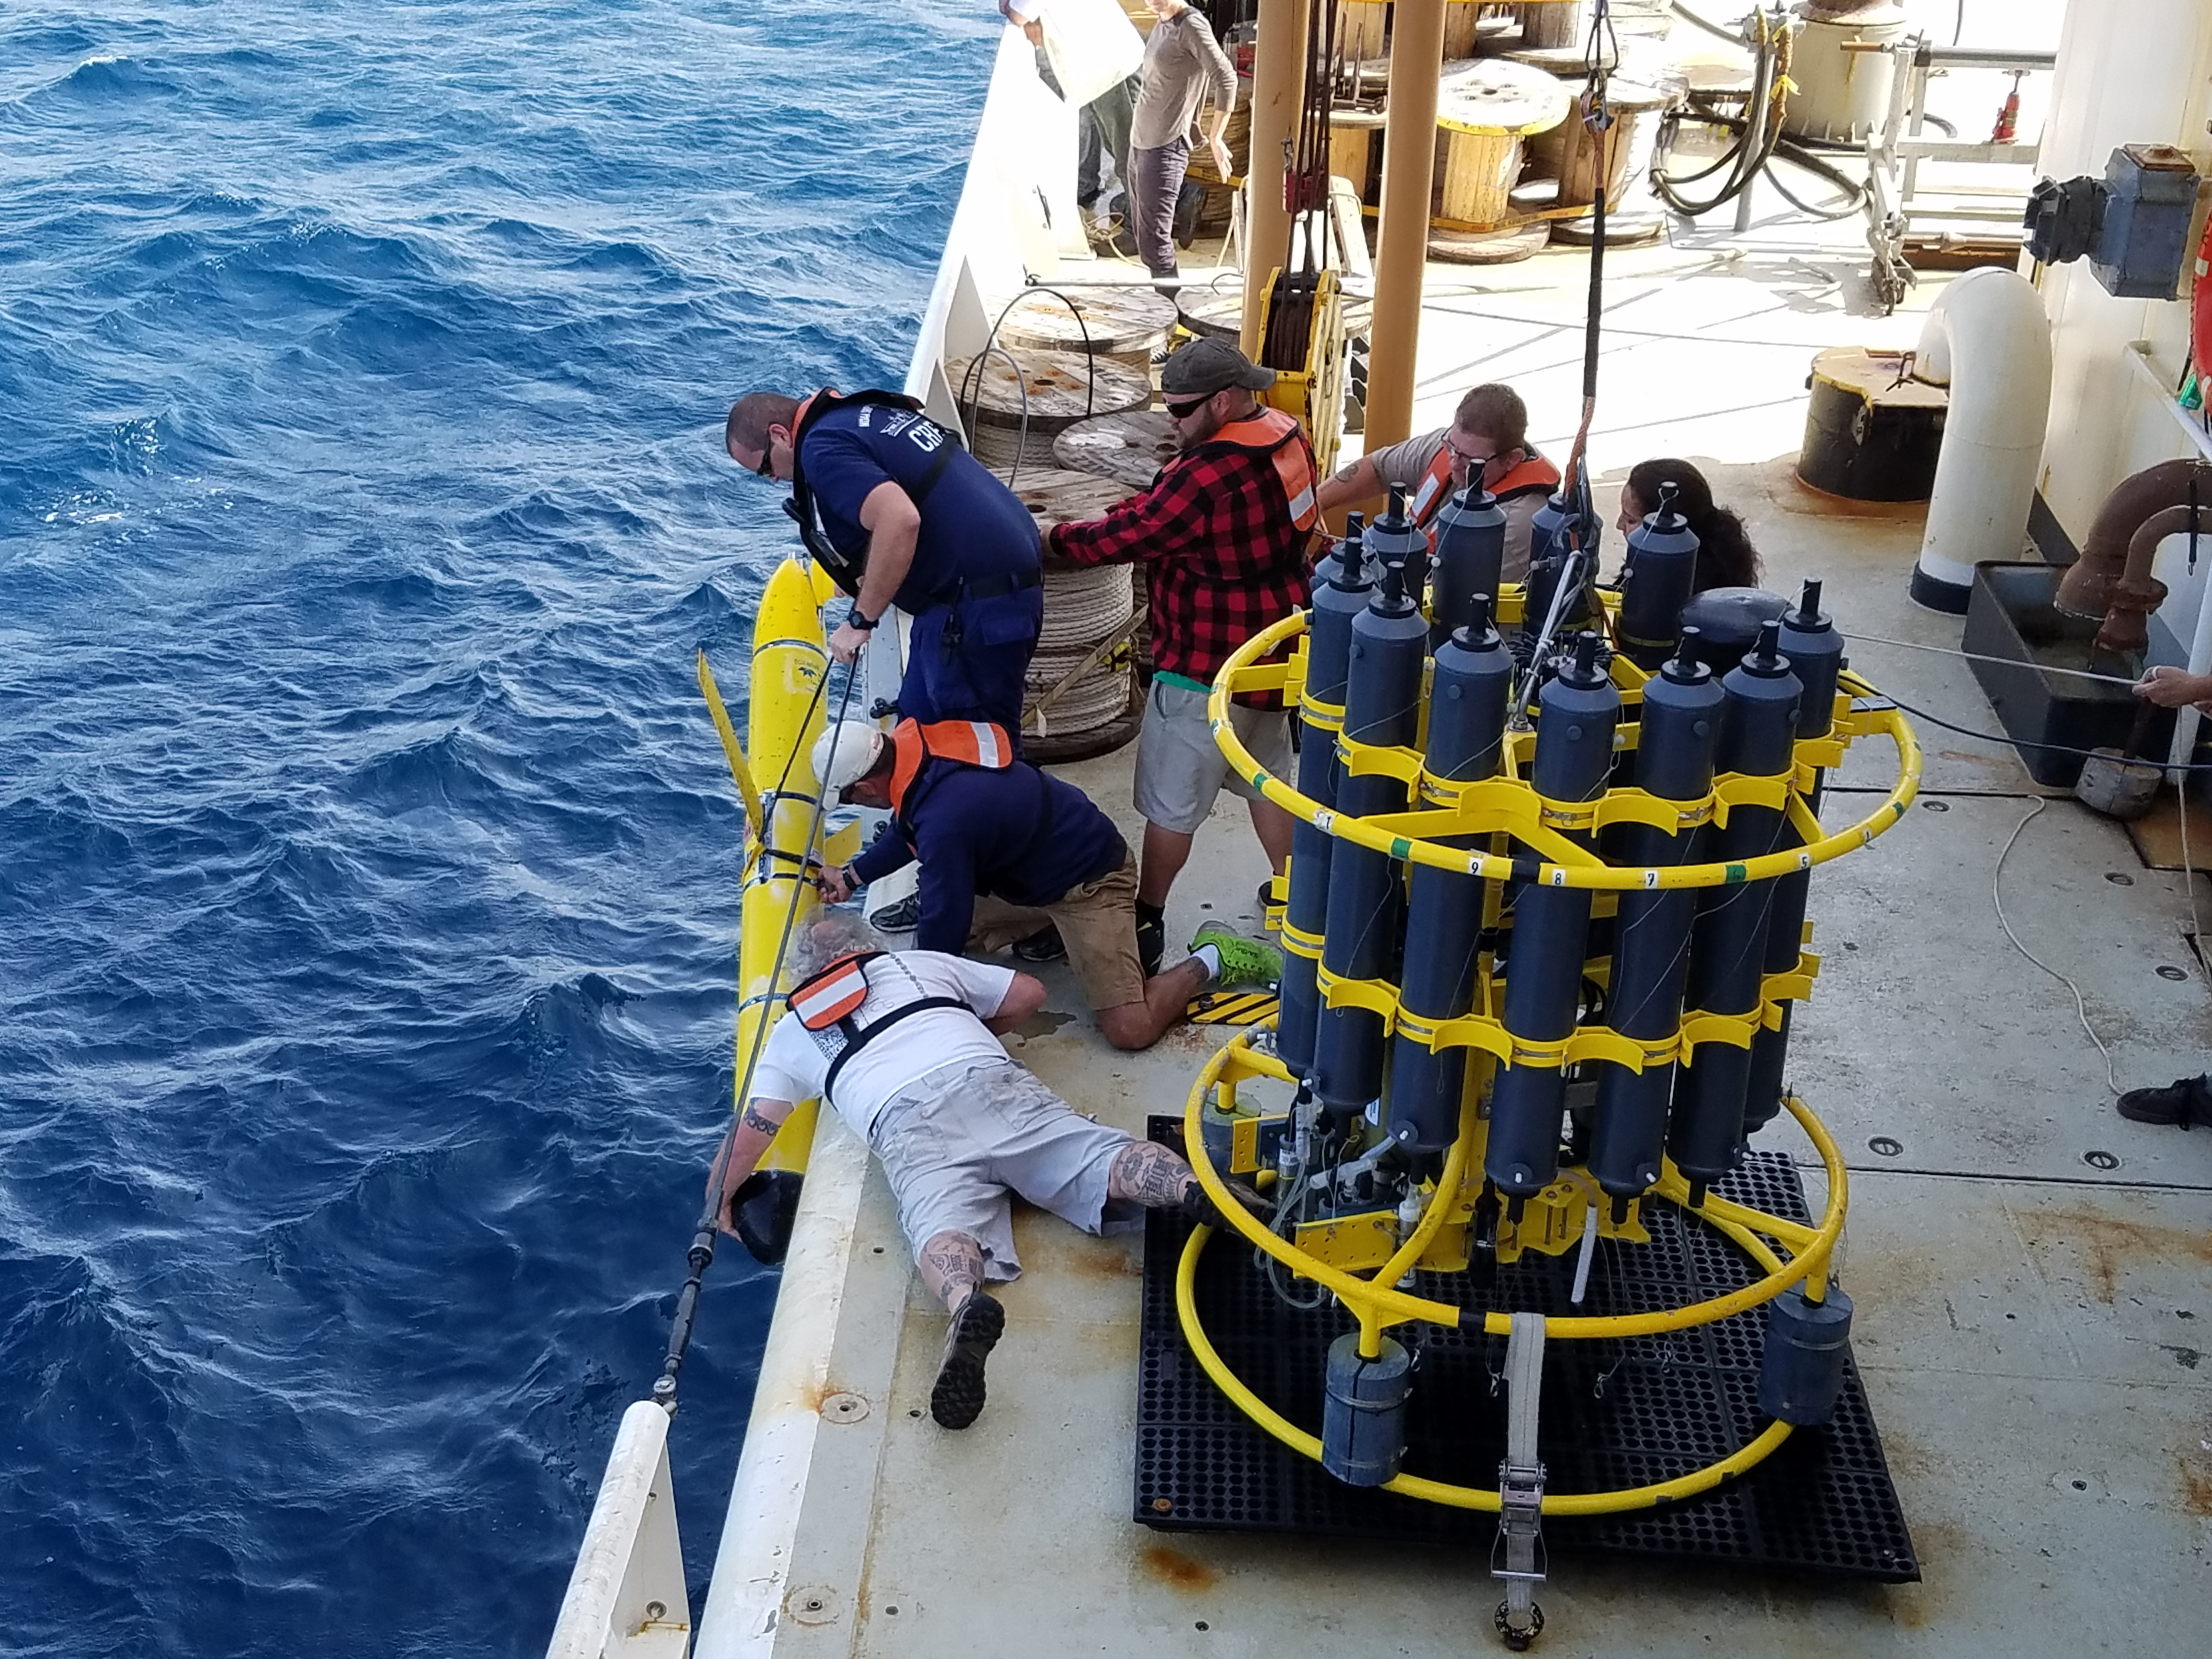 Scientists and crew members recovering an underwater glider. Image credit: NOAA